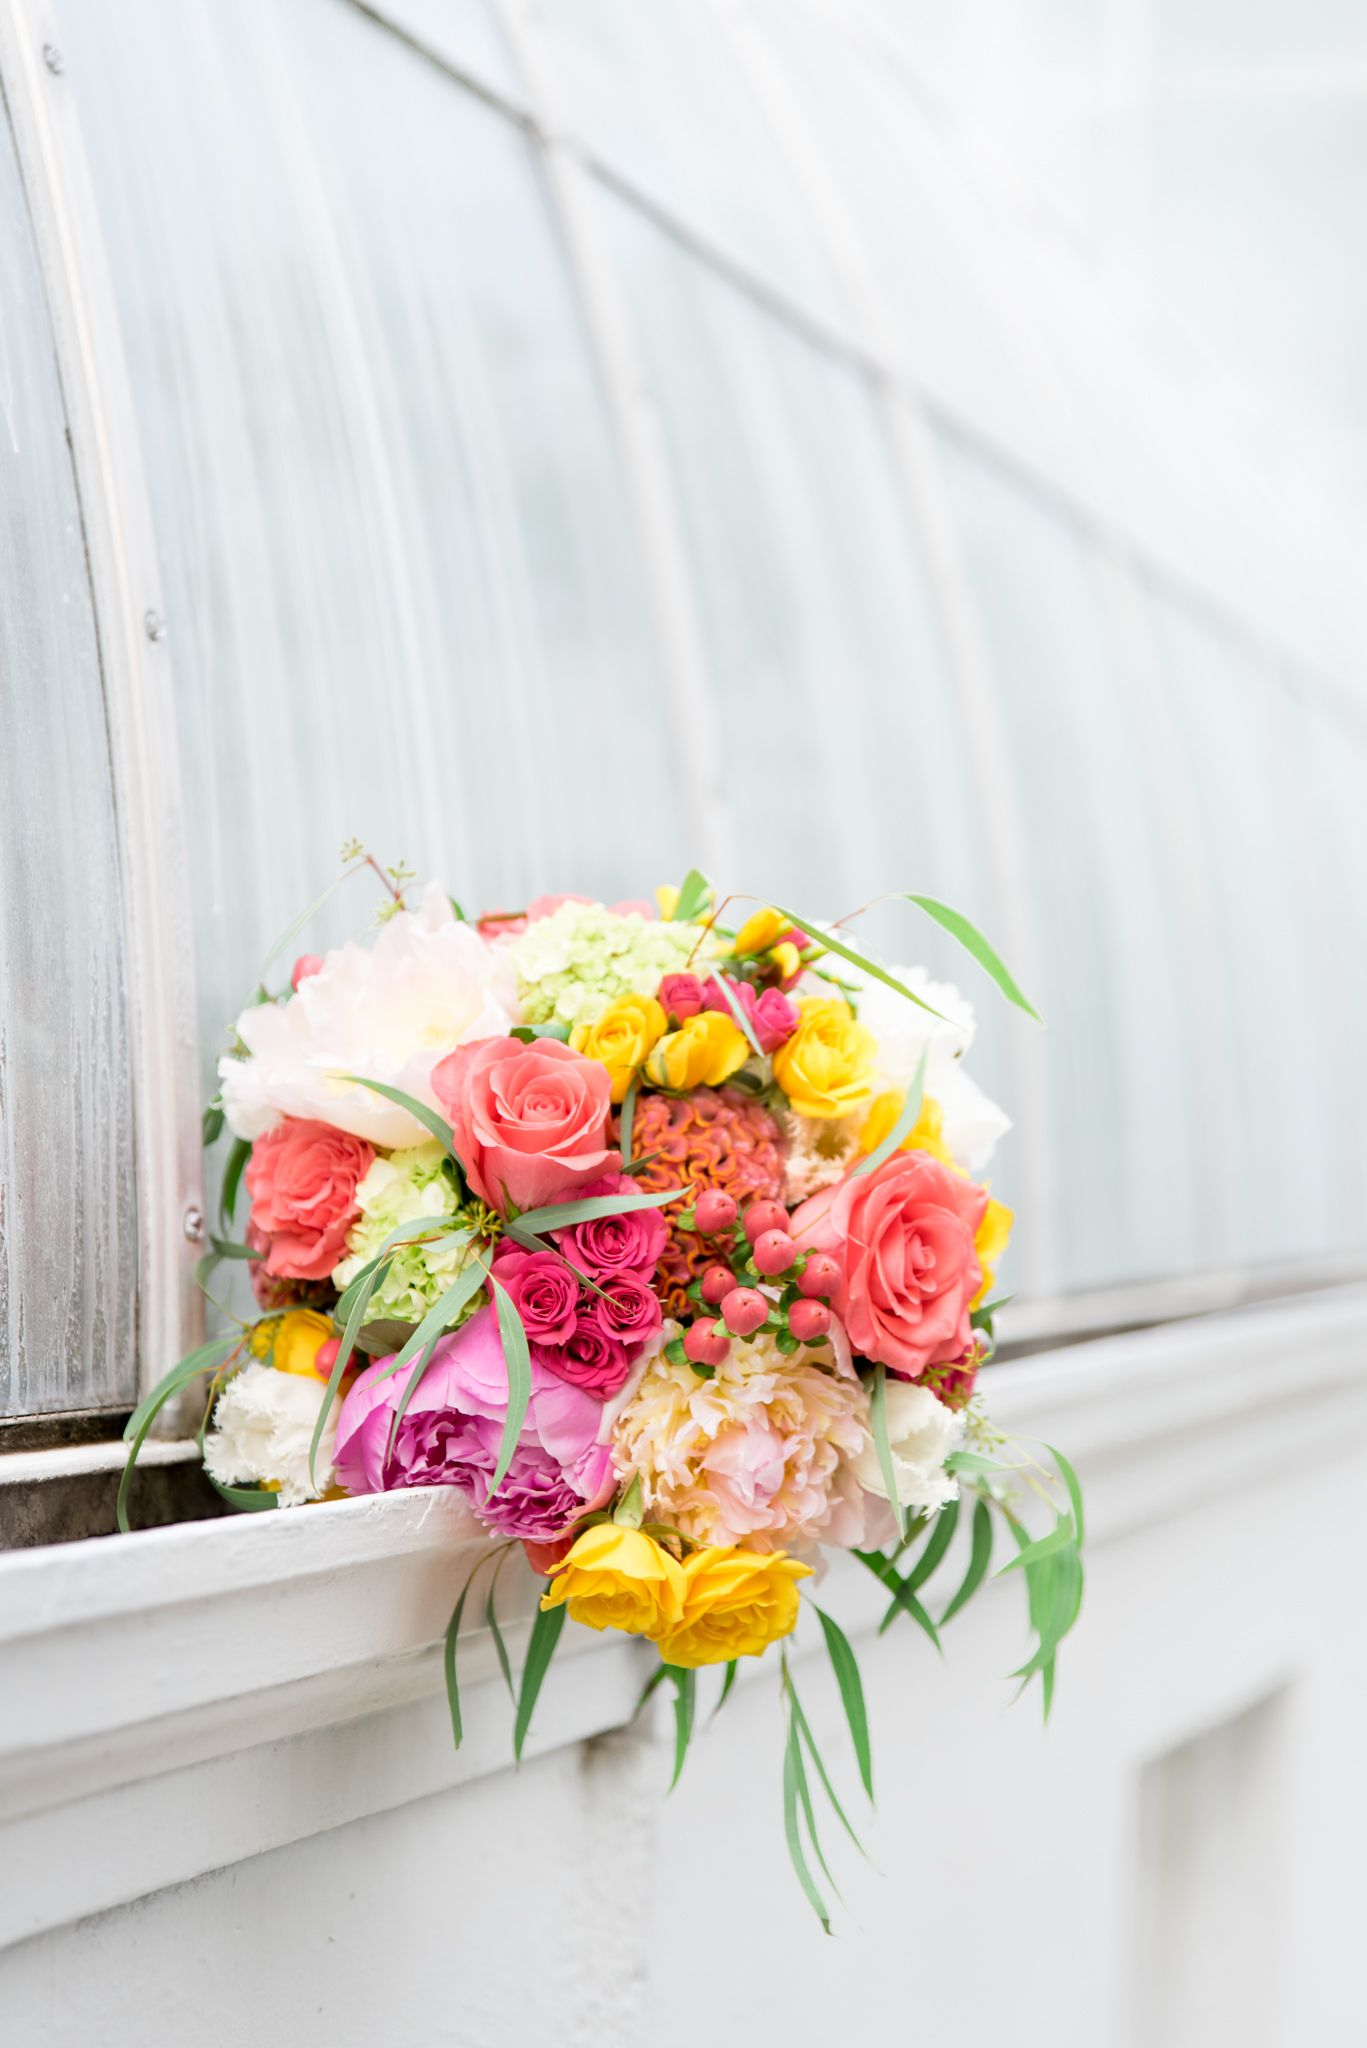 summer wedding bouquet with coral, pink, and yellow mixes roses and peonies against a glass conservatory window